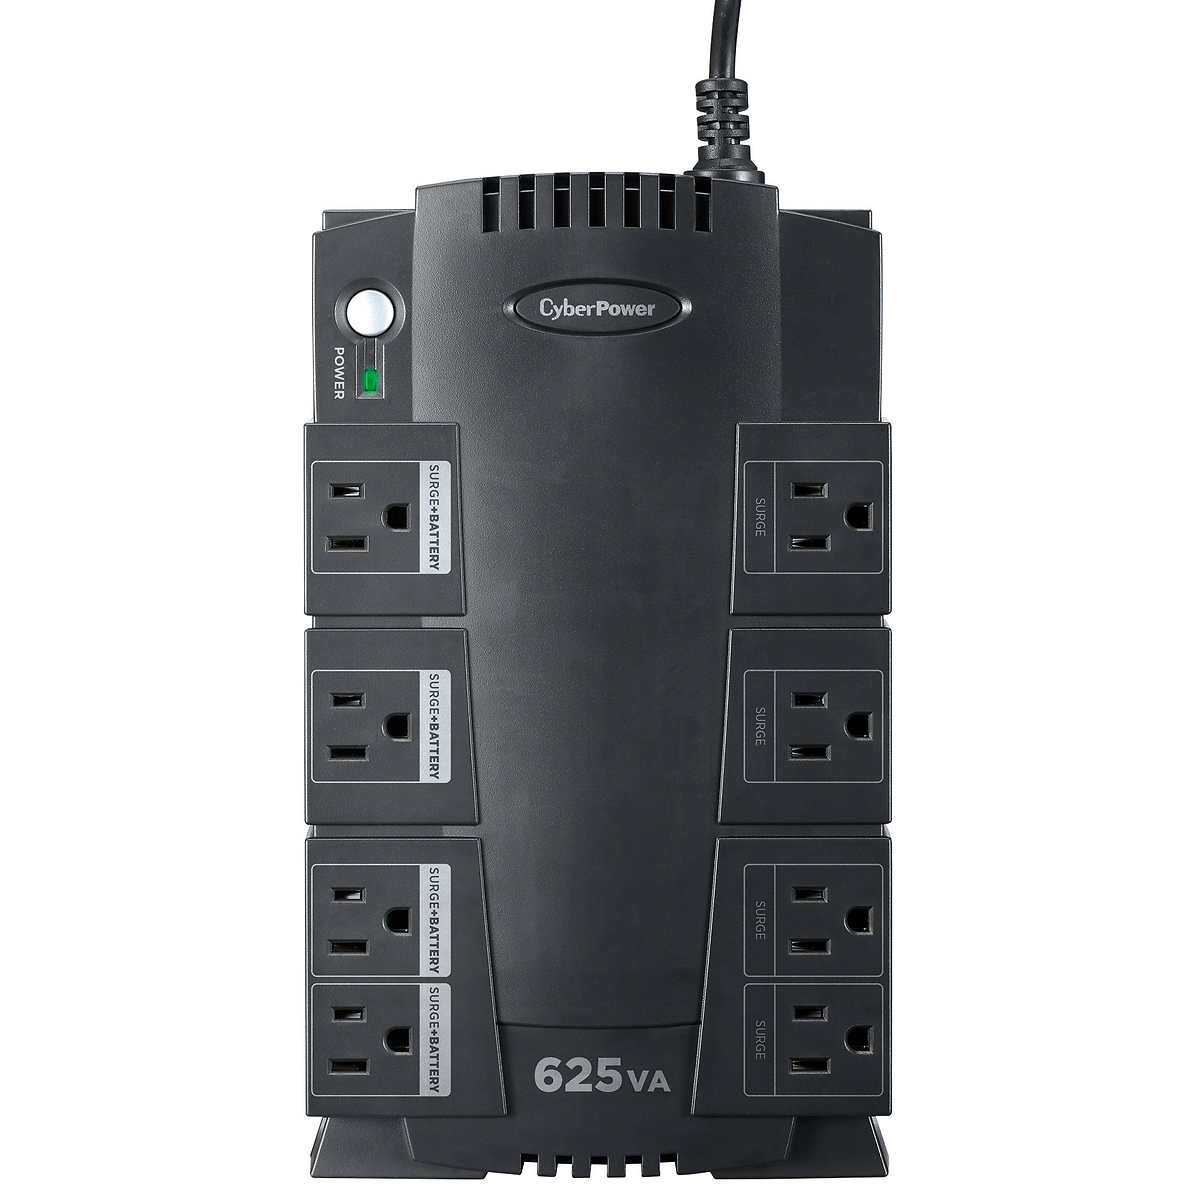 CyberPower 625VA/375Watts UPS Battery Backup with Surge Protection